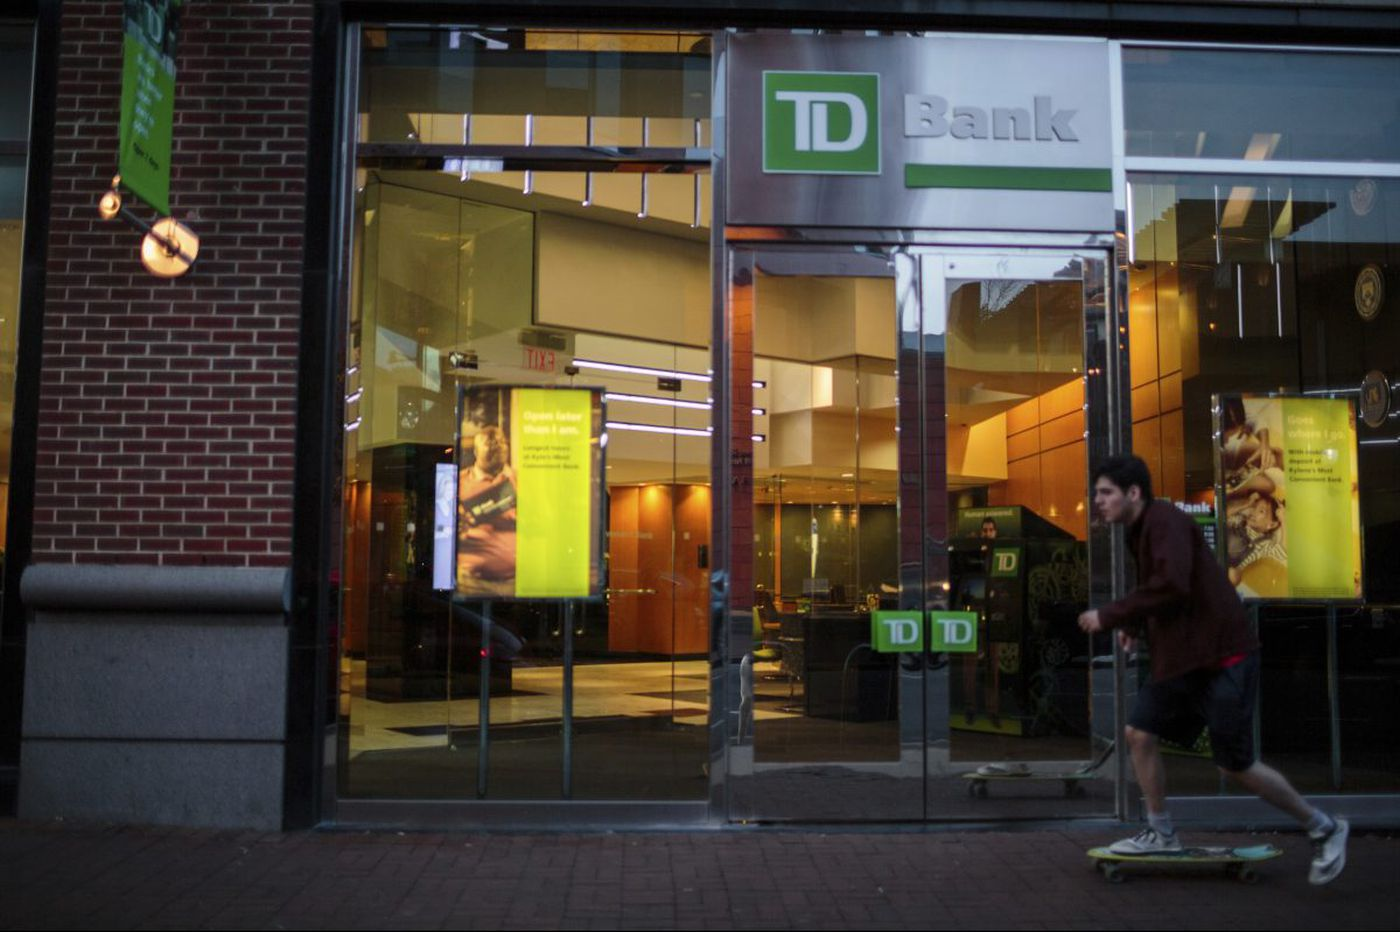 Tuesday updates: TD Bank still putting customers back online